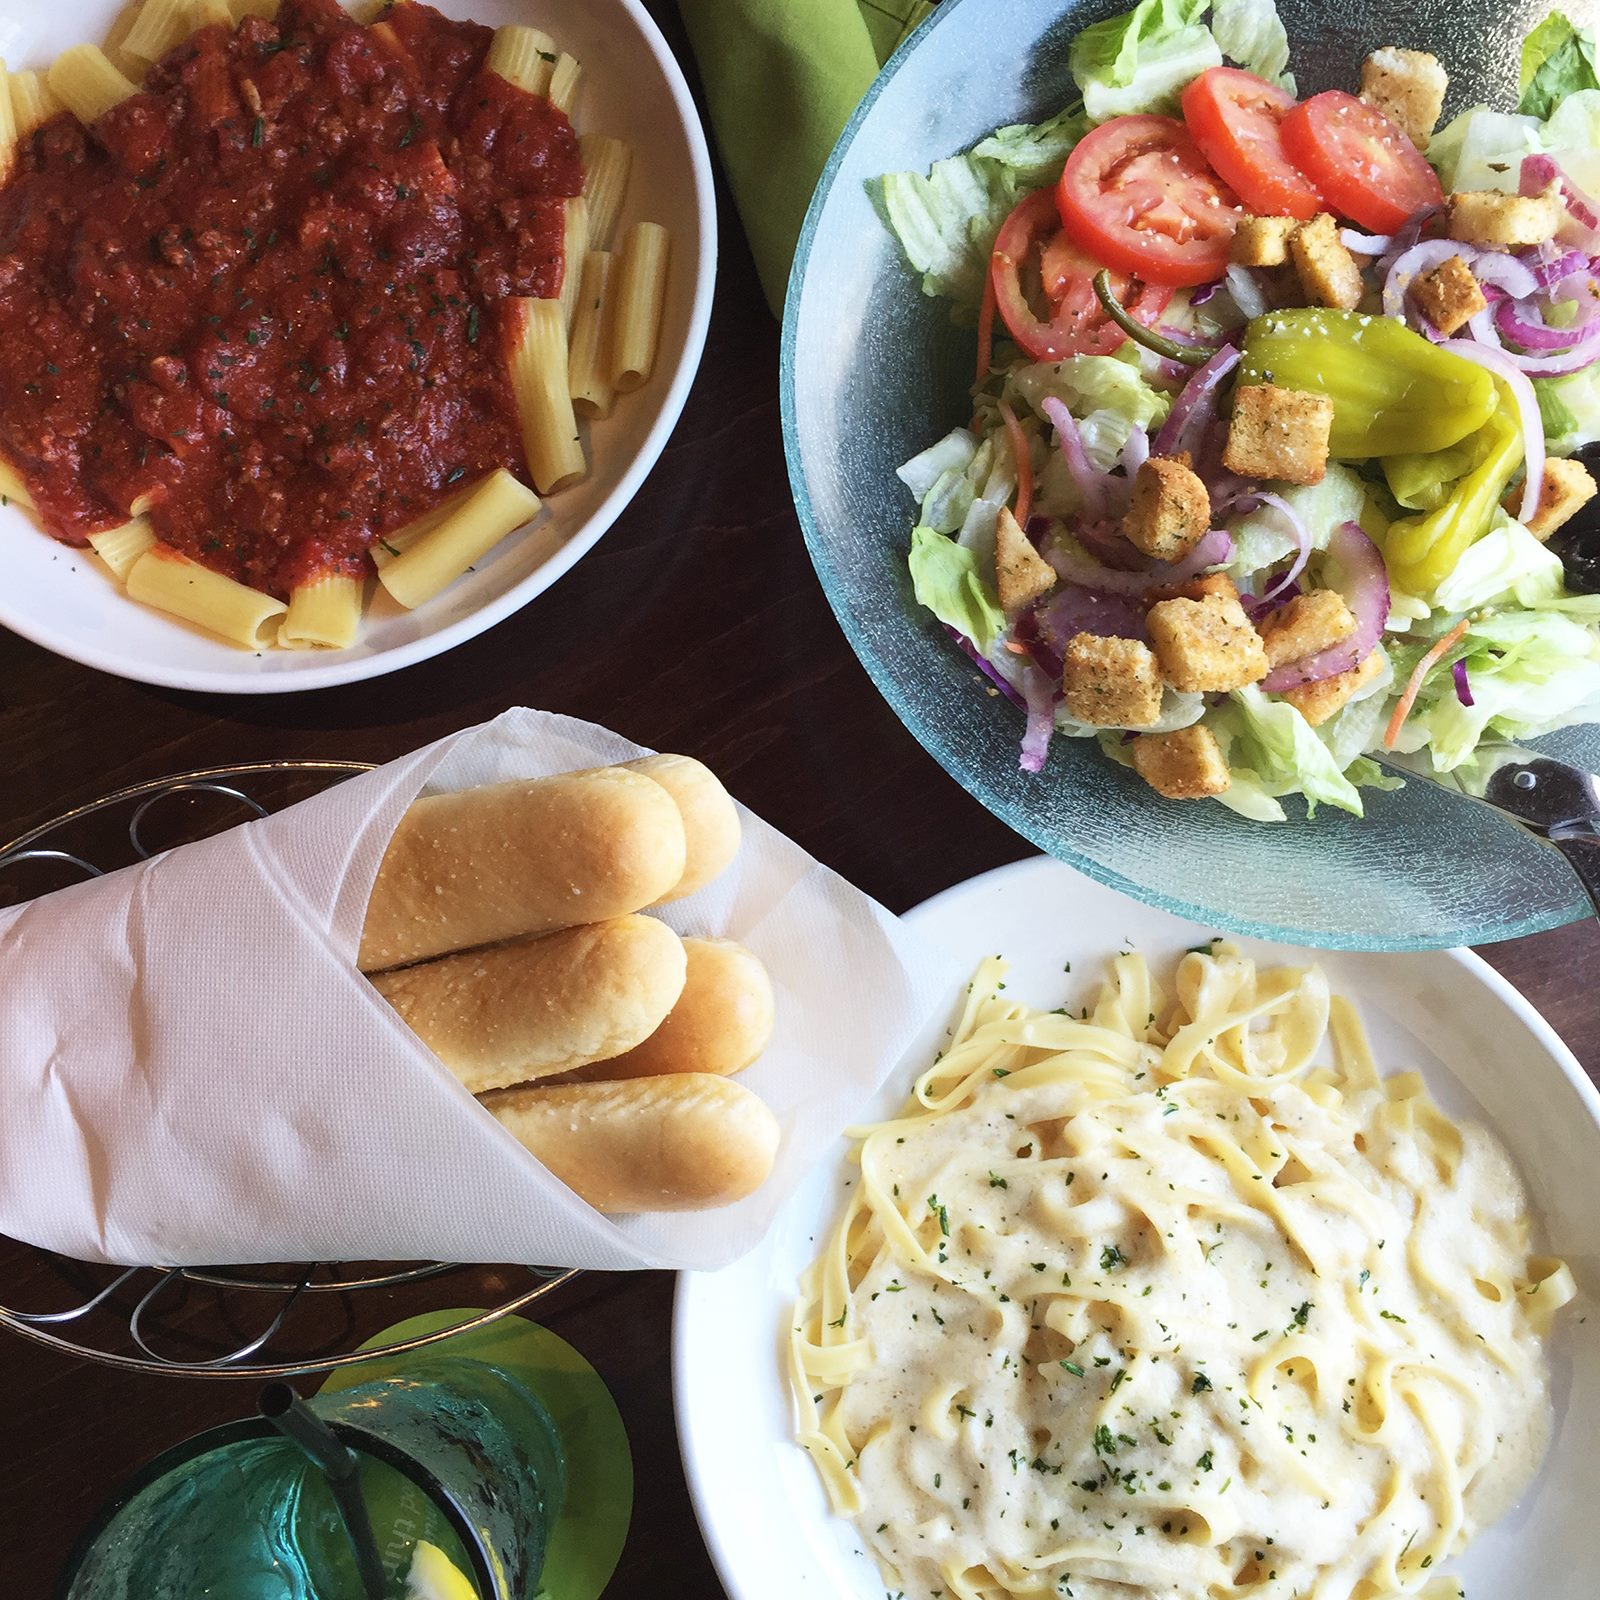 Olive Garden Never Ending Pasta Bowl 20th Anniversary Celebration Starting At Just Marla